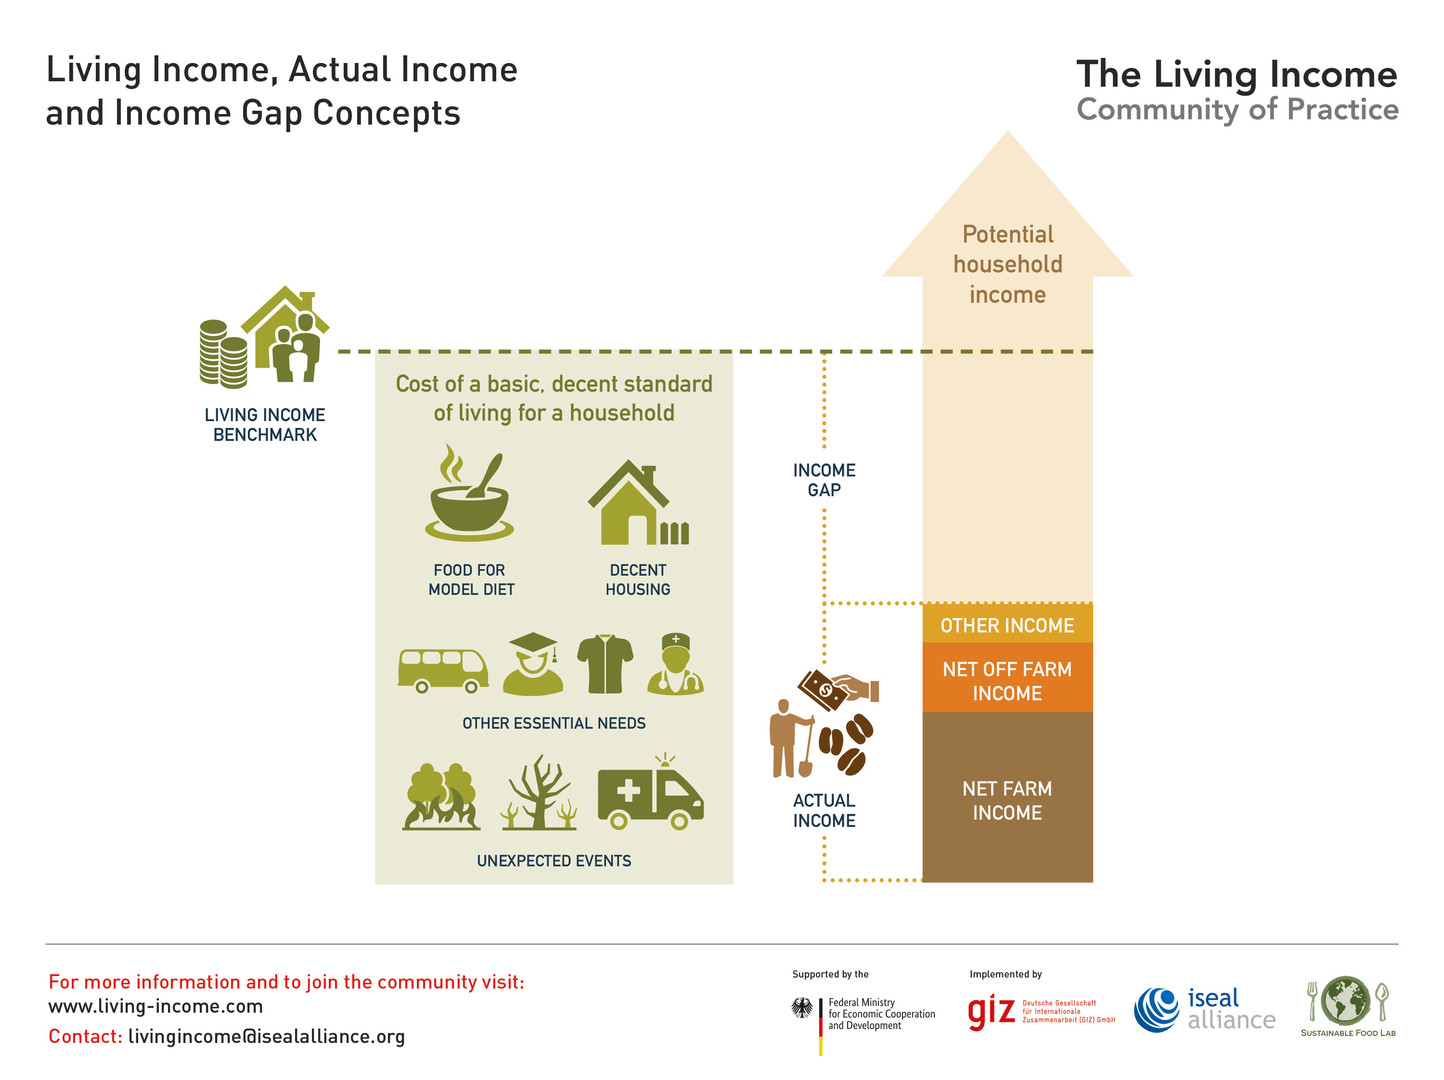 Living Income, Actual Income and Income Gap Concepts - 2019 ©LivingIncomeCommunityofPractice